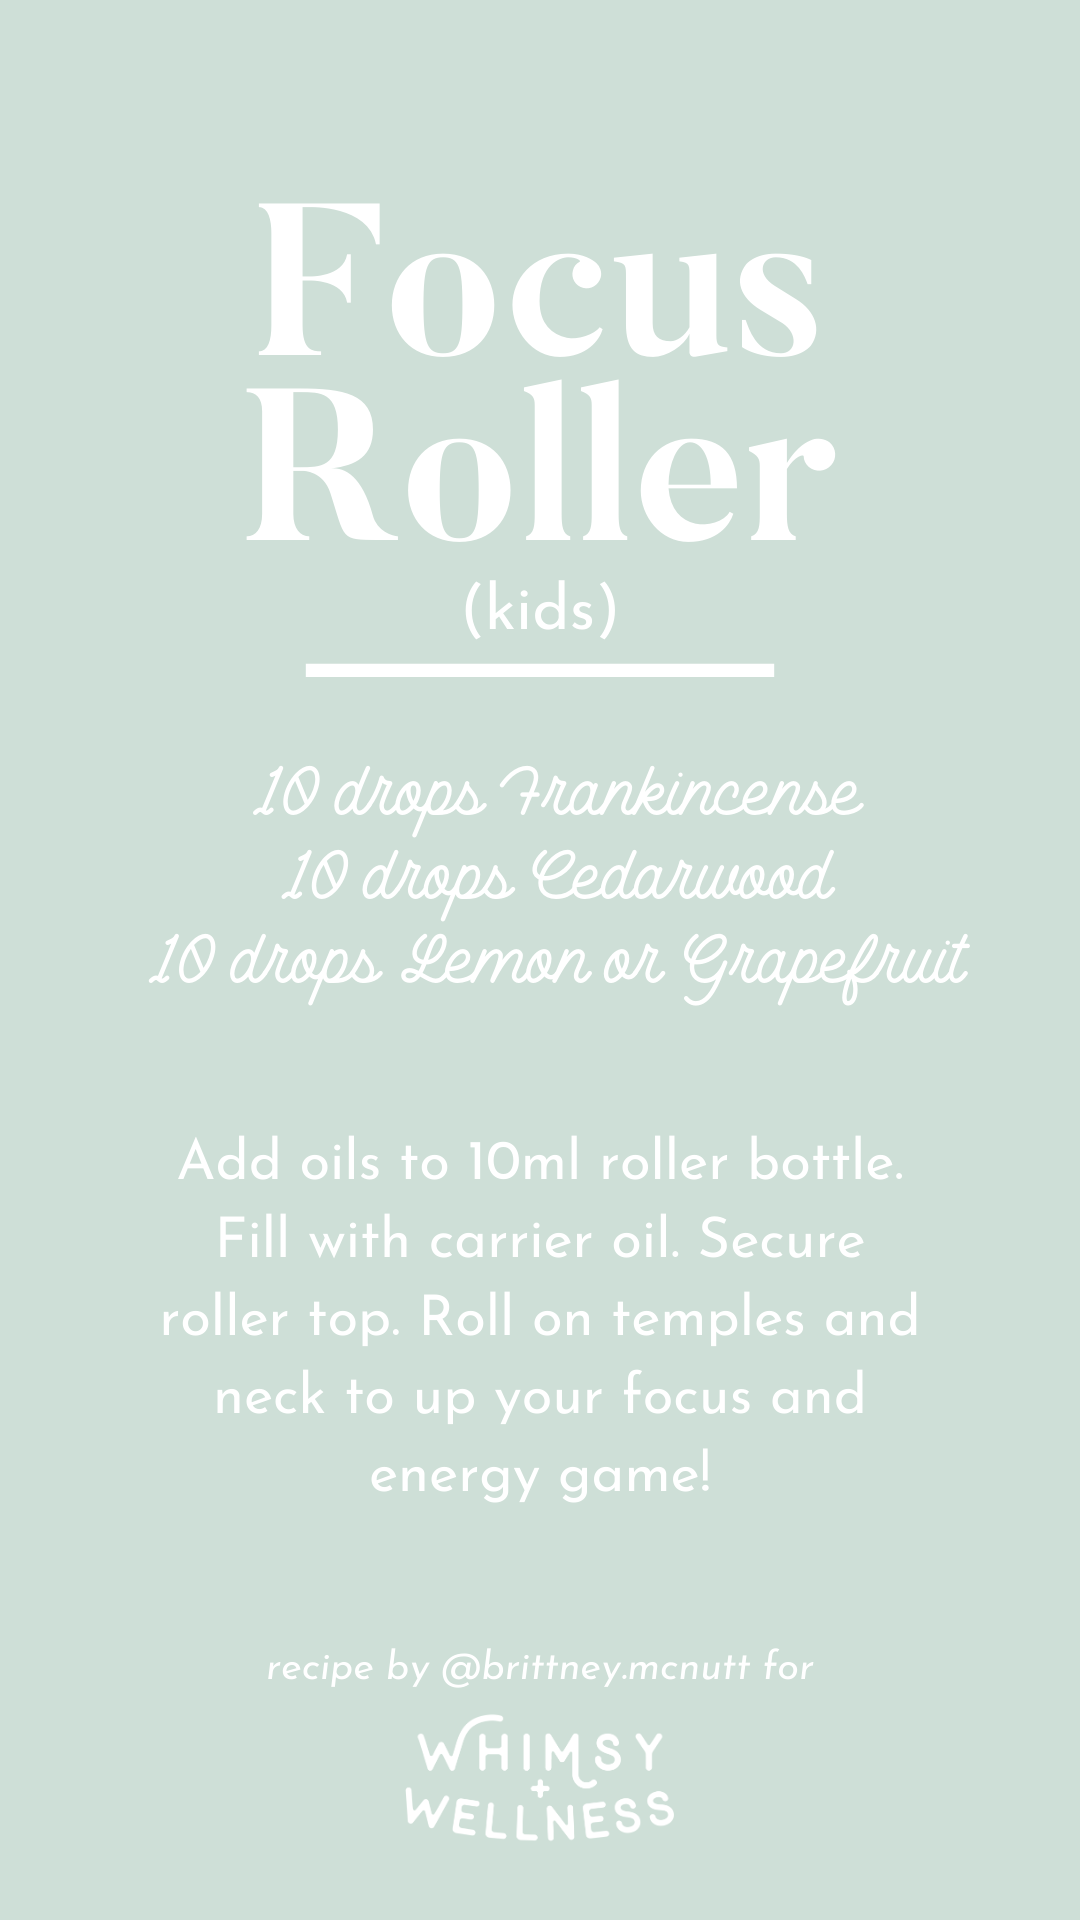 Focus roller (kids) recipe blend using Young Living essential oils